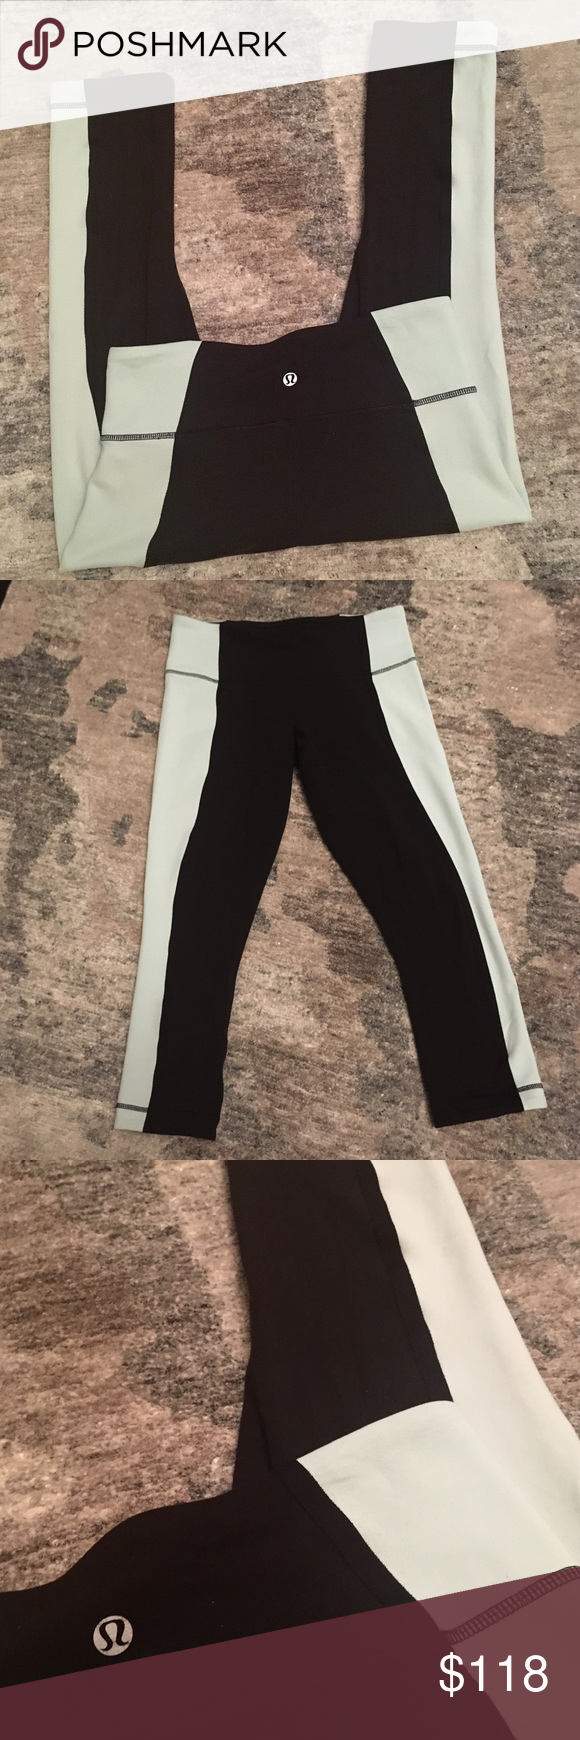 Lululemon Black & Pale Blue Cropped Run Leggings 🎁Offers welcome                                           🔑Bundle to save                                             👍Like for price drop notifications               EUC Lululemon Black and Pale Blue Cropped Leggings. These beauts are made of lululemon's stretch fabric, perfect for breaking a sweat or just lounging around! They measure approx. 27.5 inches in length & 14 inches across (while laid flat). These pants have no size tag but the…